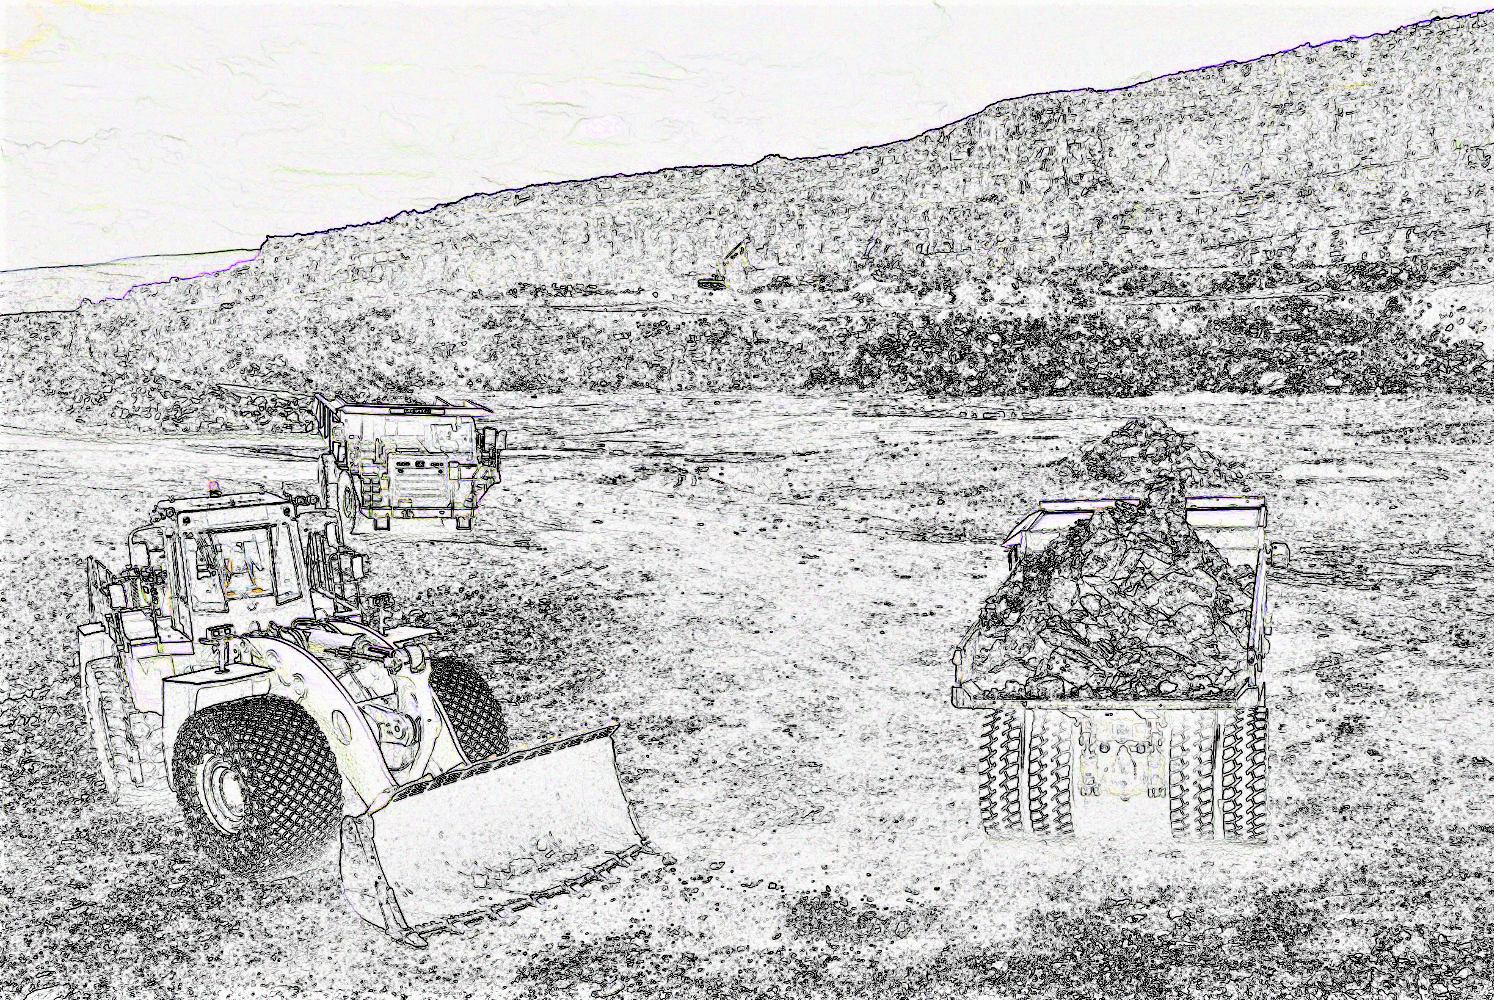 mobile fllet in a cement quarry